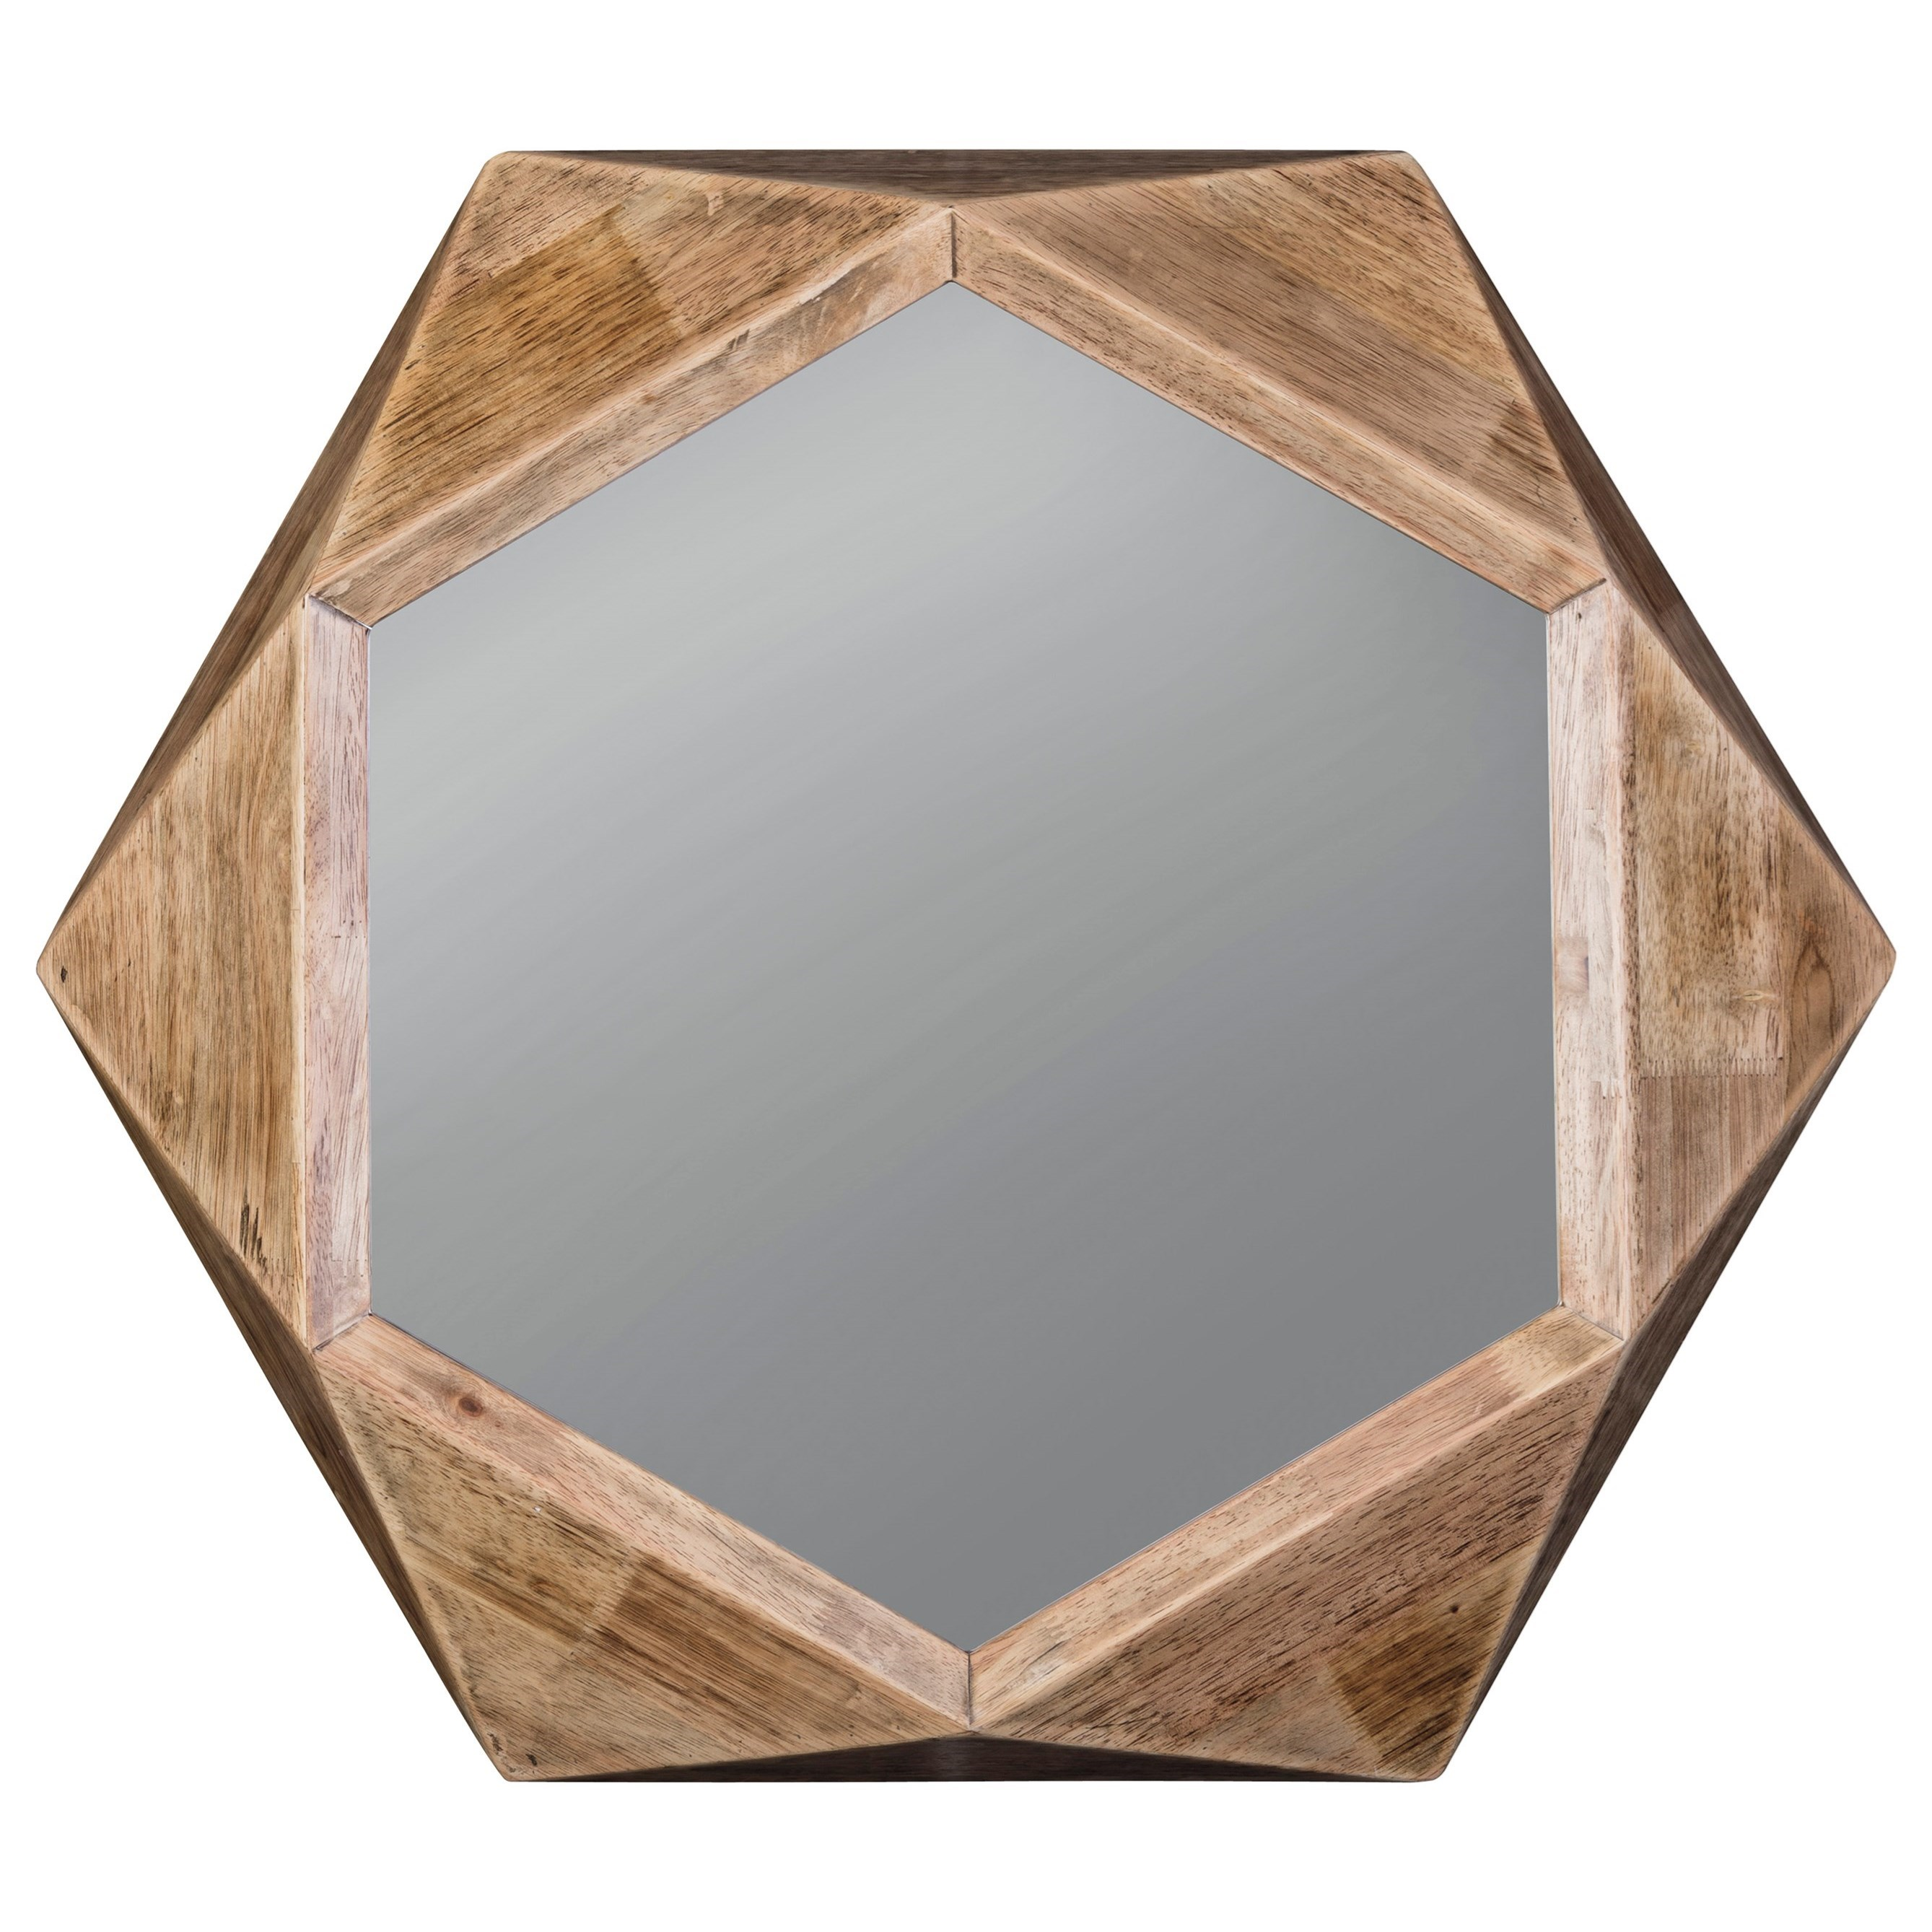 Signature design by ashley accent mirrors corin natural for Accent wall mirrors